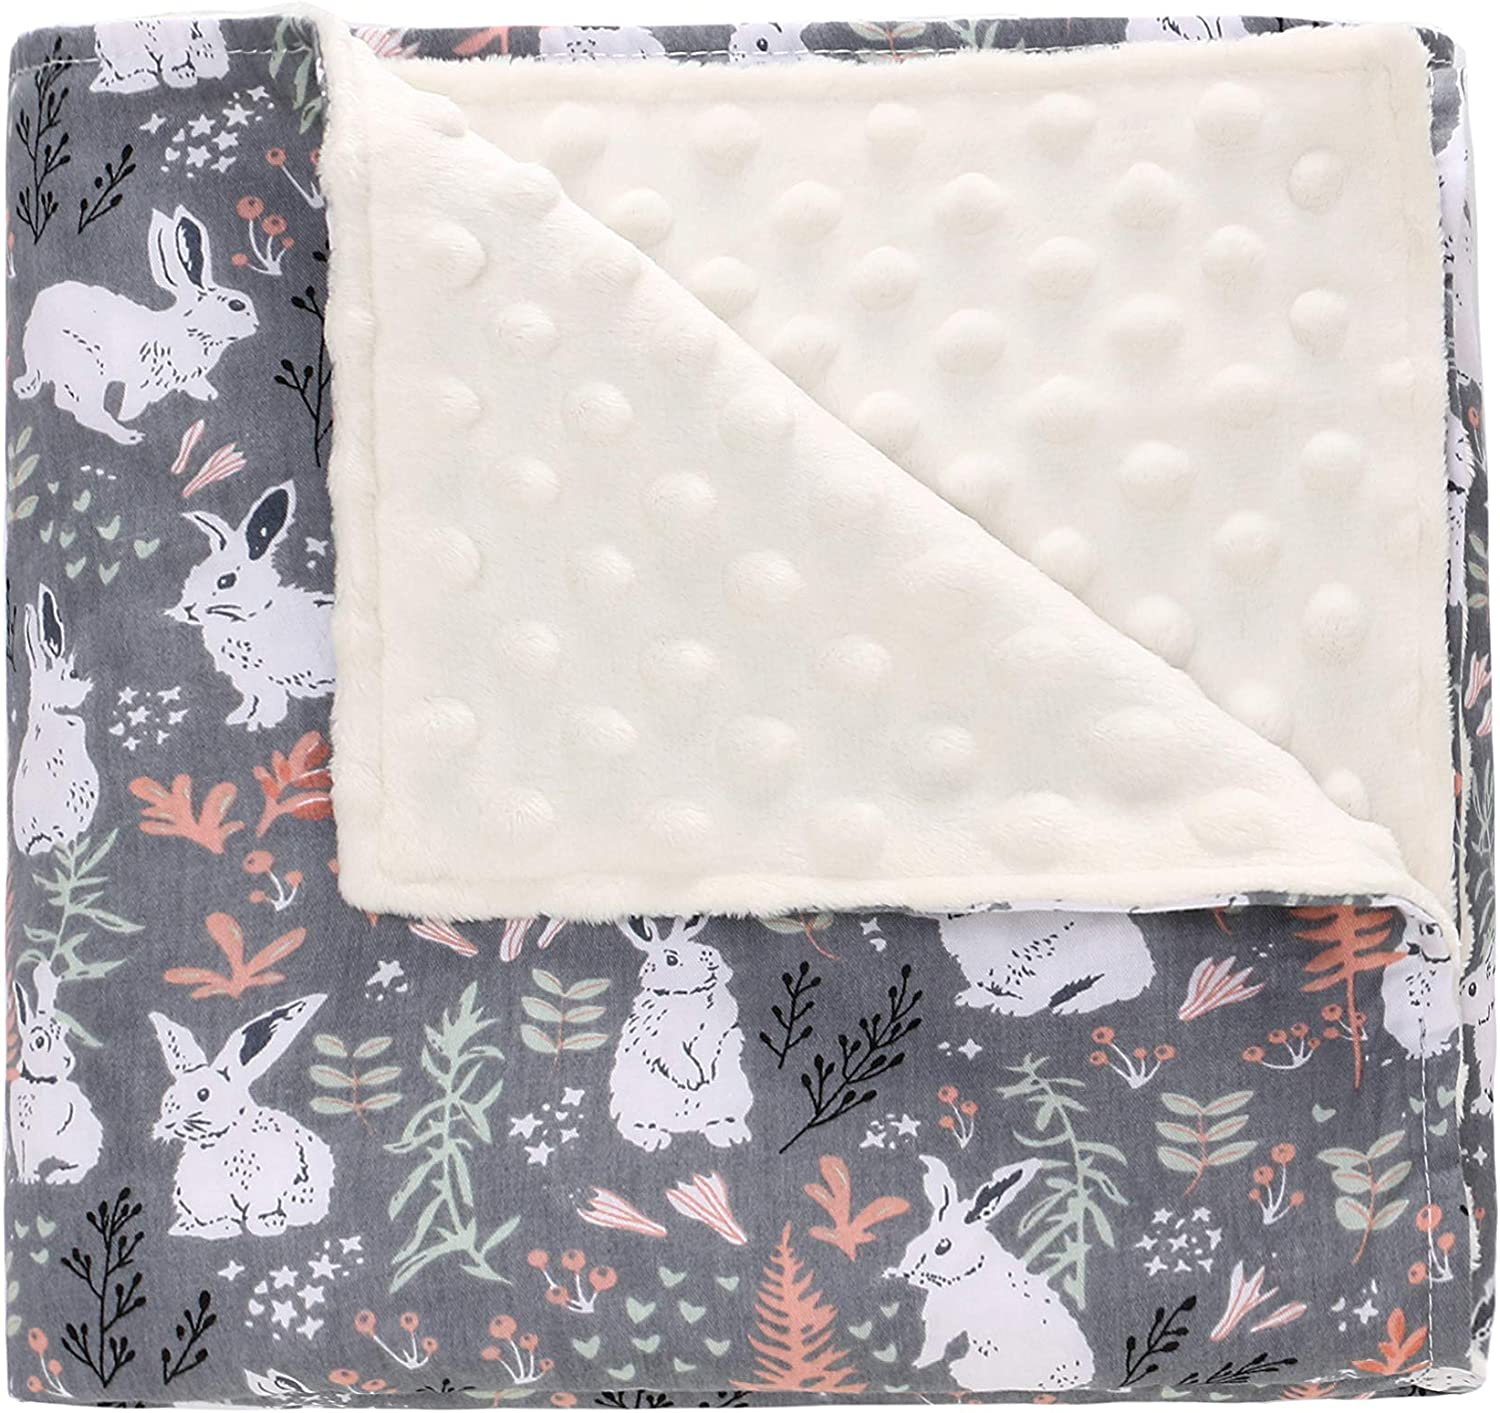 Bee Perfect Baby Shower Gift for Boys Girls Super Soft Minky Dot Baby Security Blanket Double Layer Dotted Backing Plush Toddler Baby Newborn Receiving Blankets 30x40